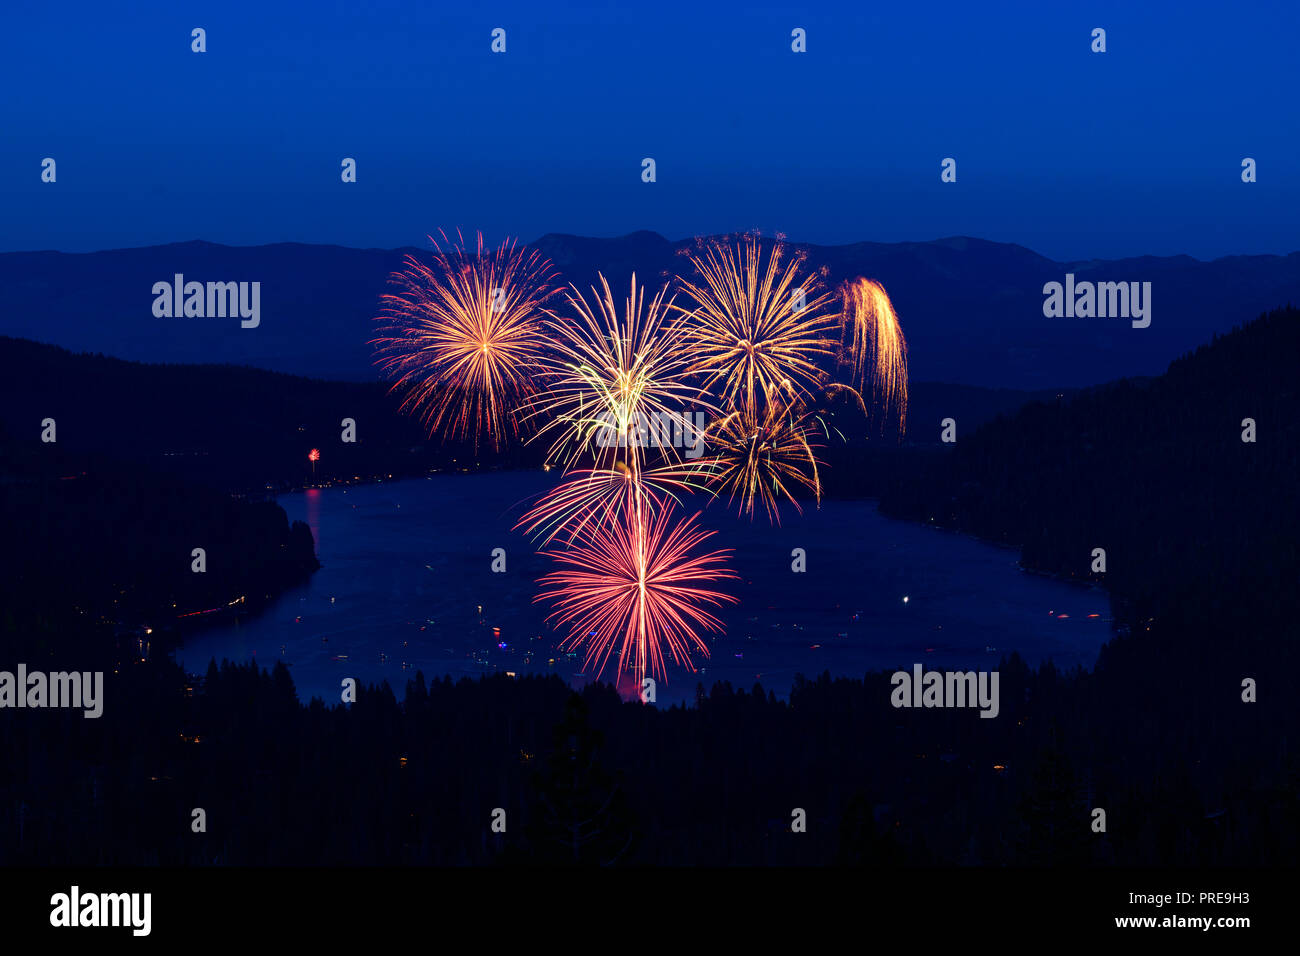 July 4 fireworks show at Donner Lake in Truckee, California, 2018. - Stock Image